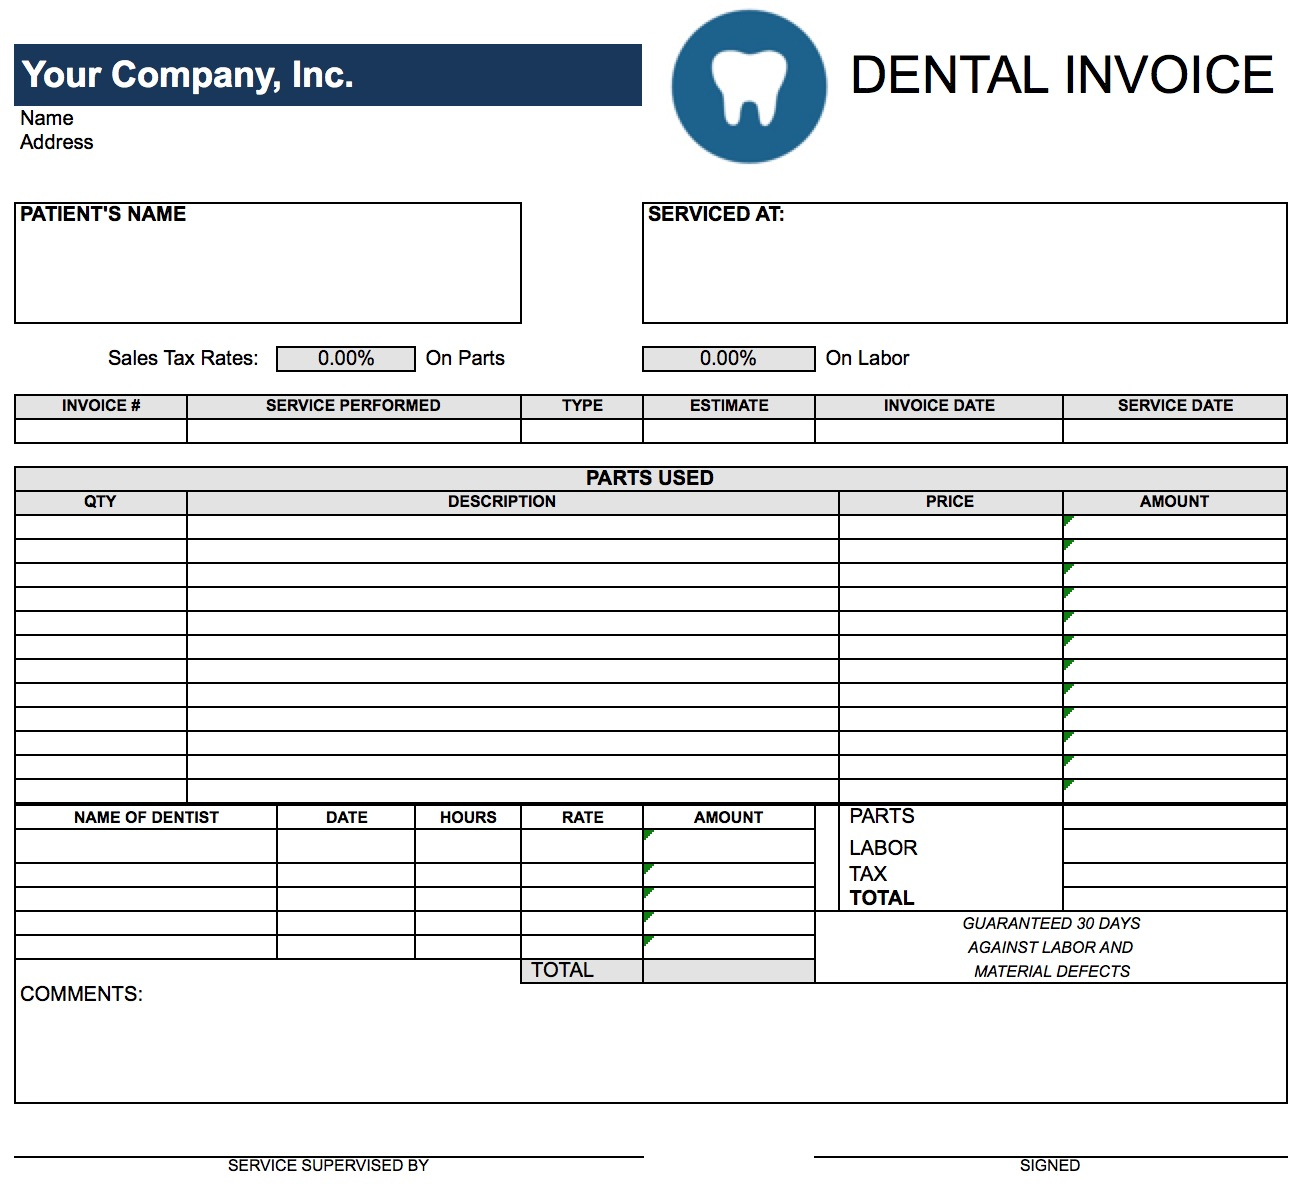 Dental Invoice Template Excel Free